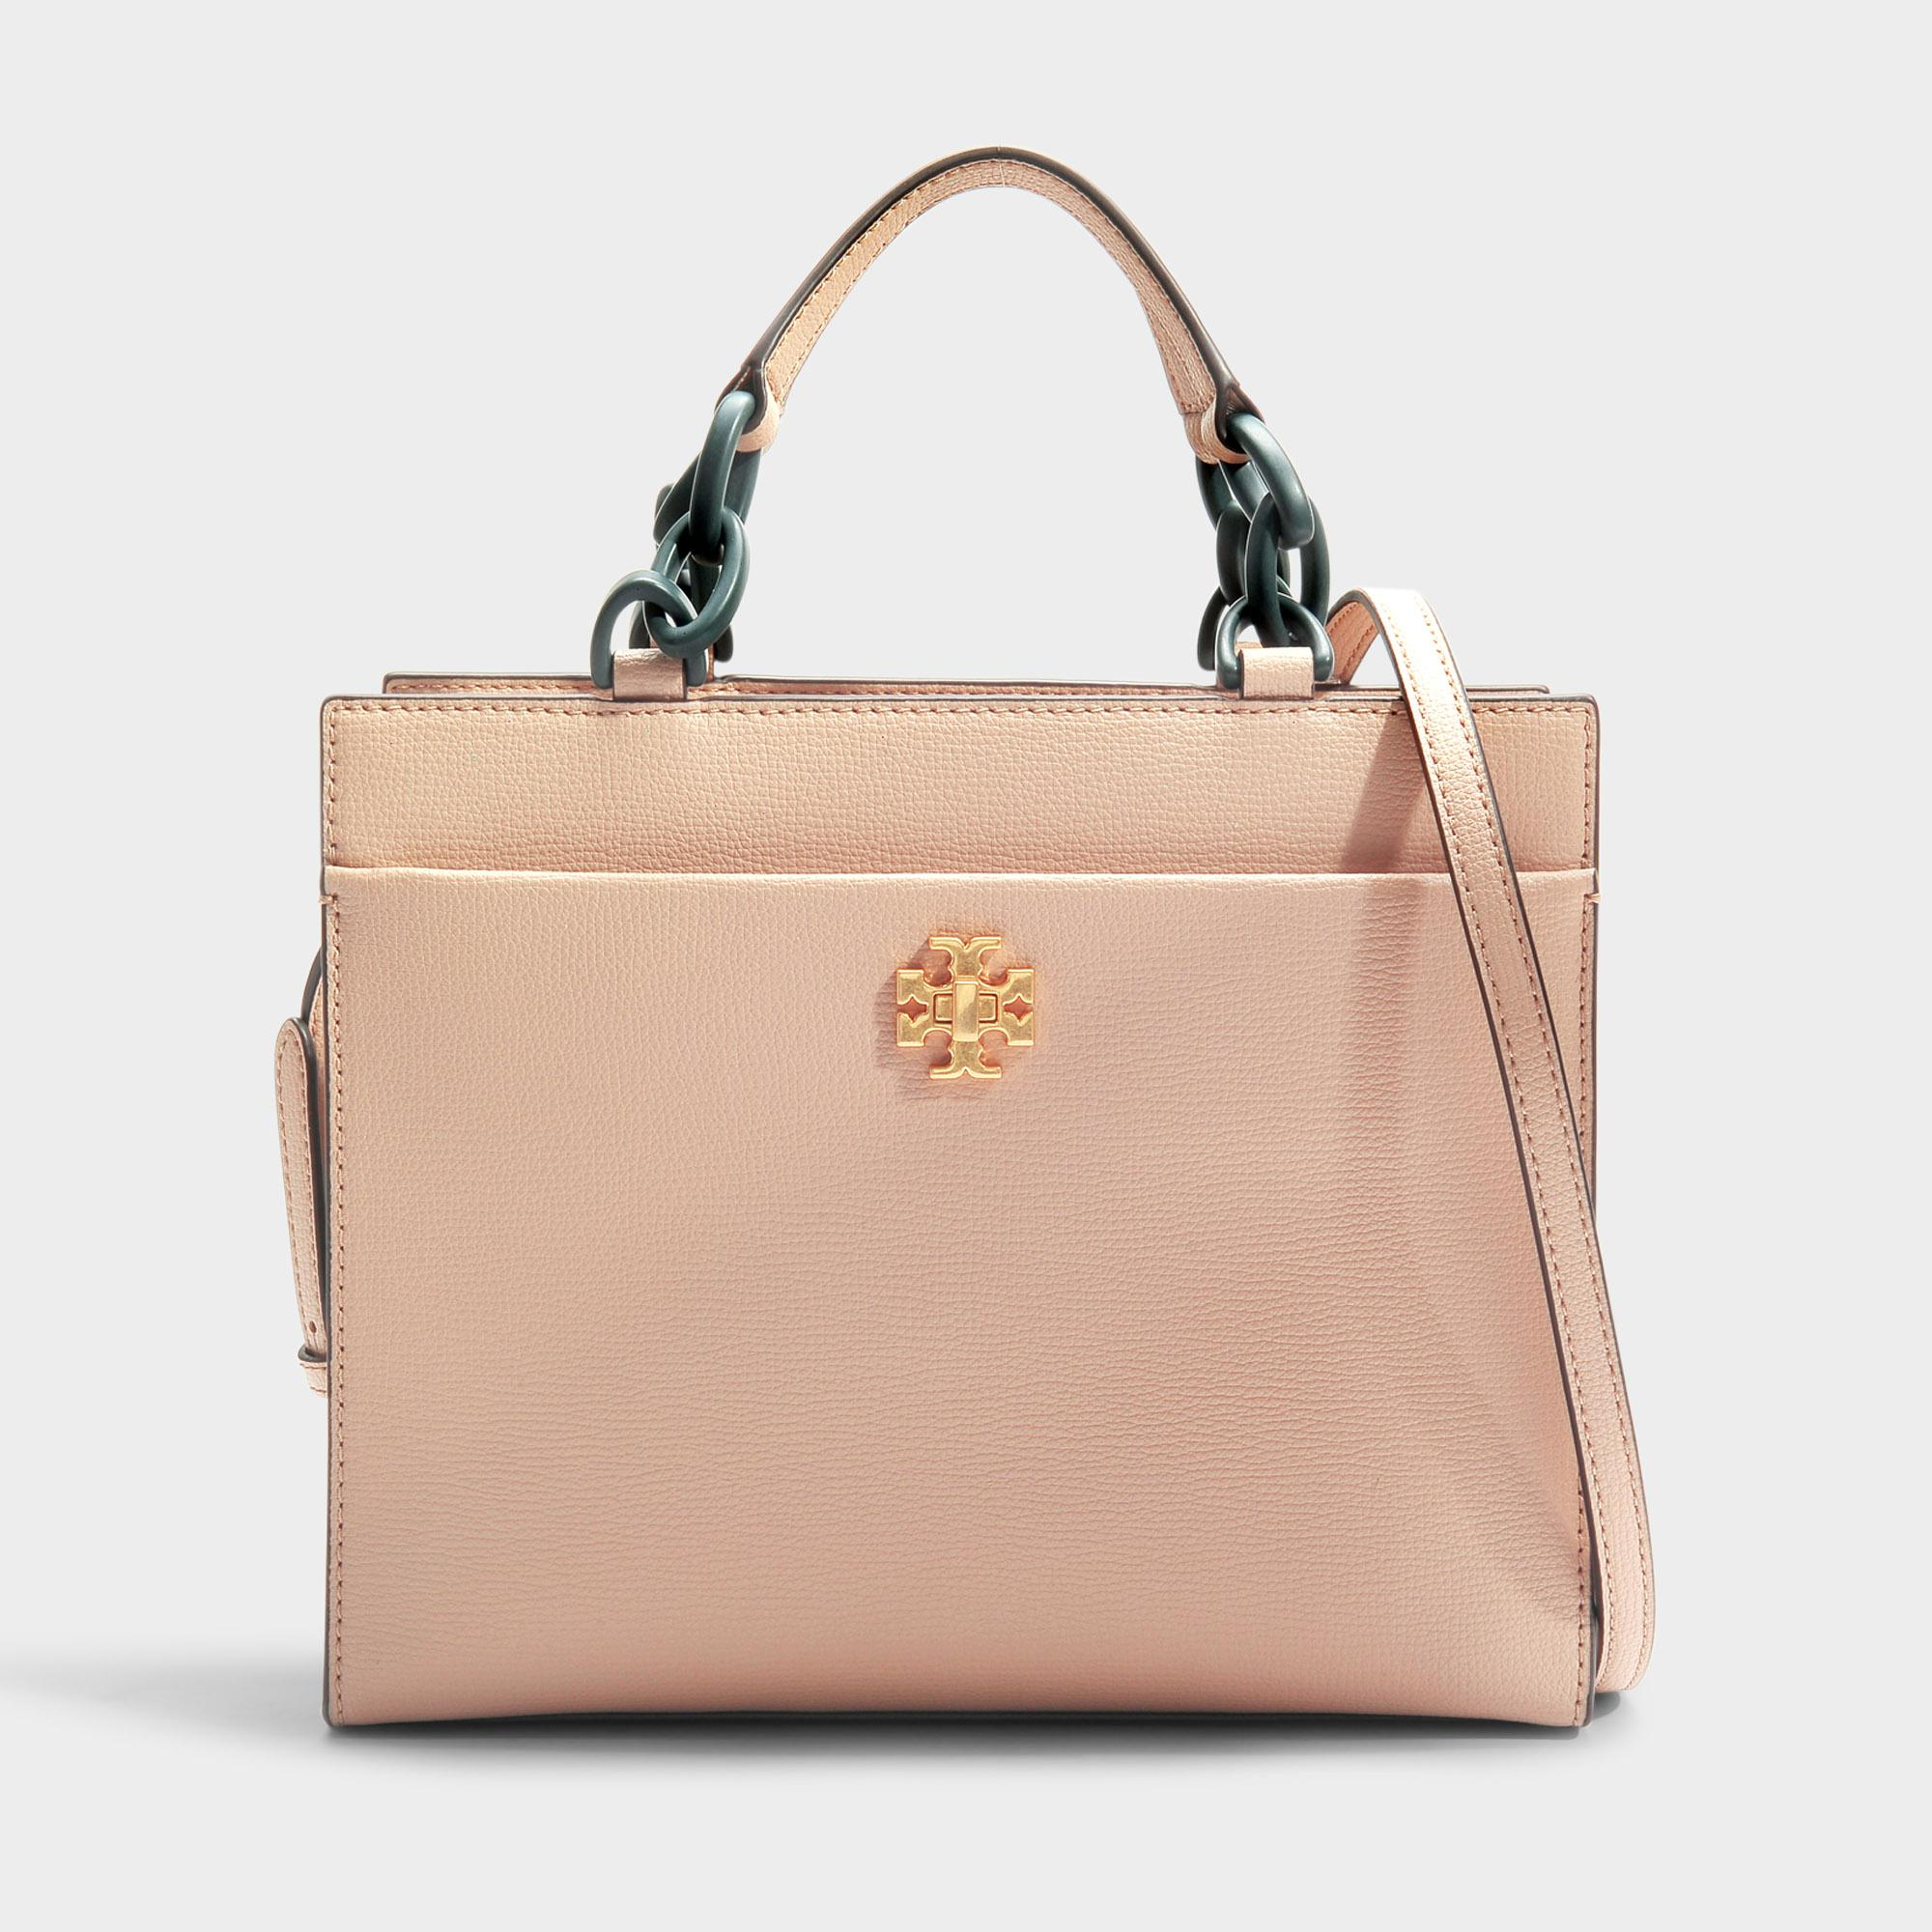 a4f1bb155b5b Tory Burch Kira Small Tote in Natural - Lyst